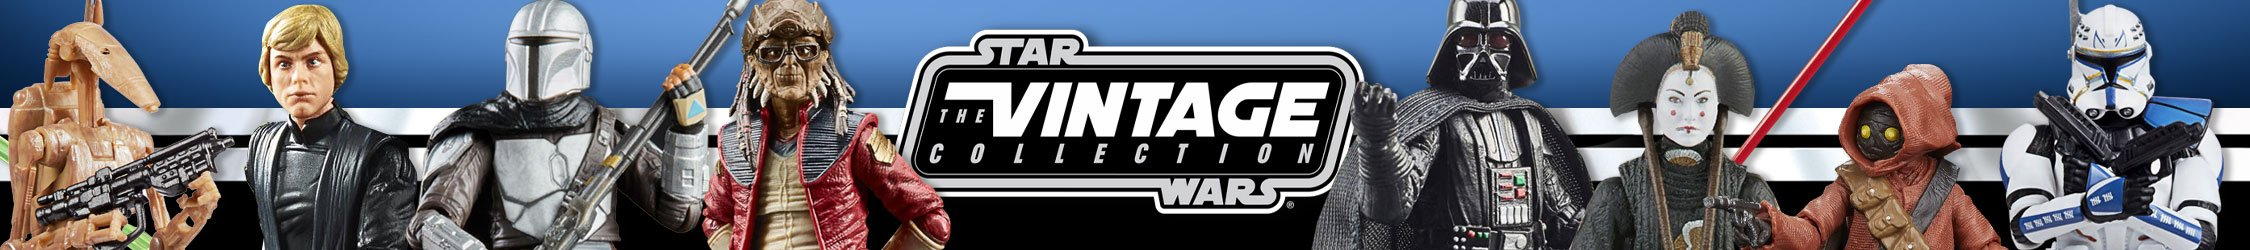 swvintagecollection